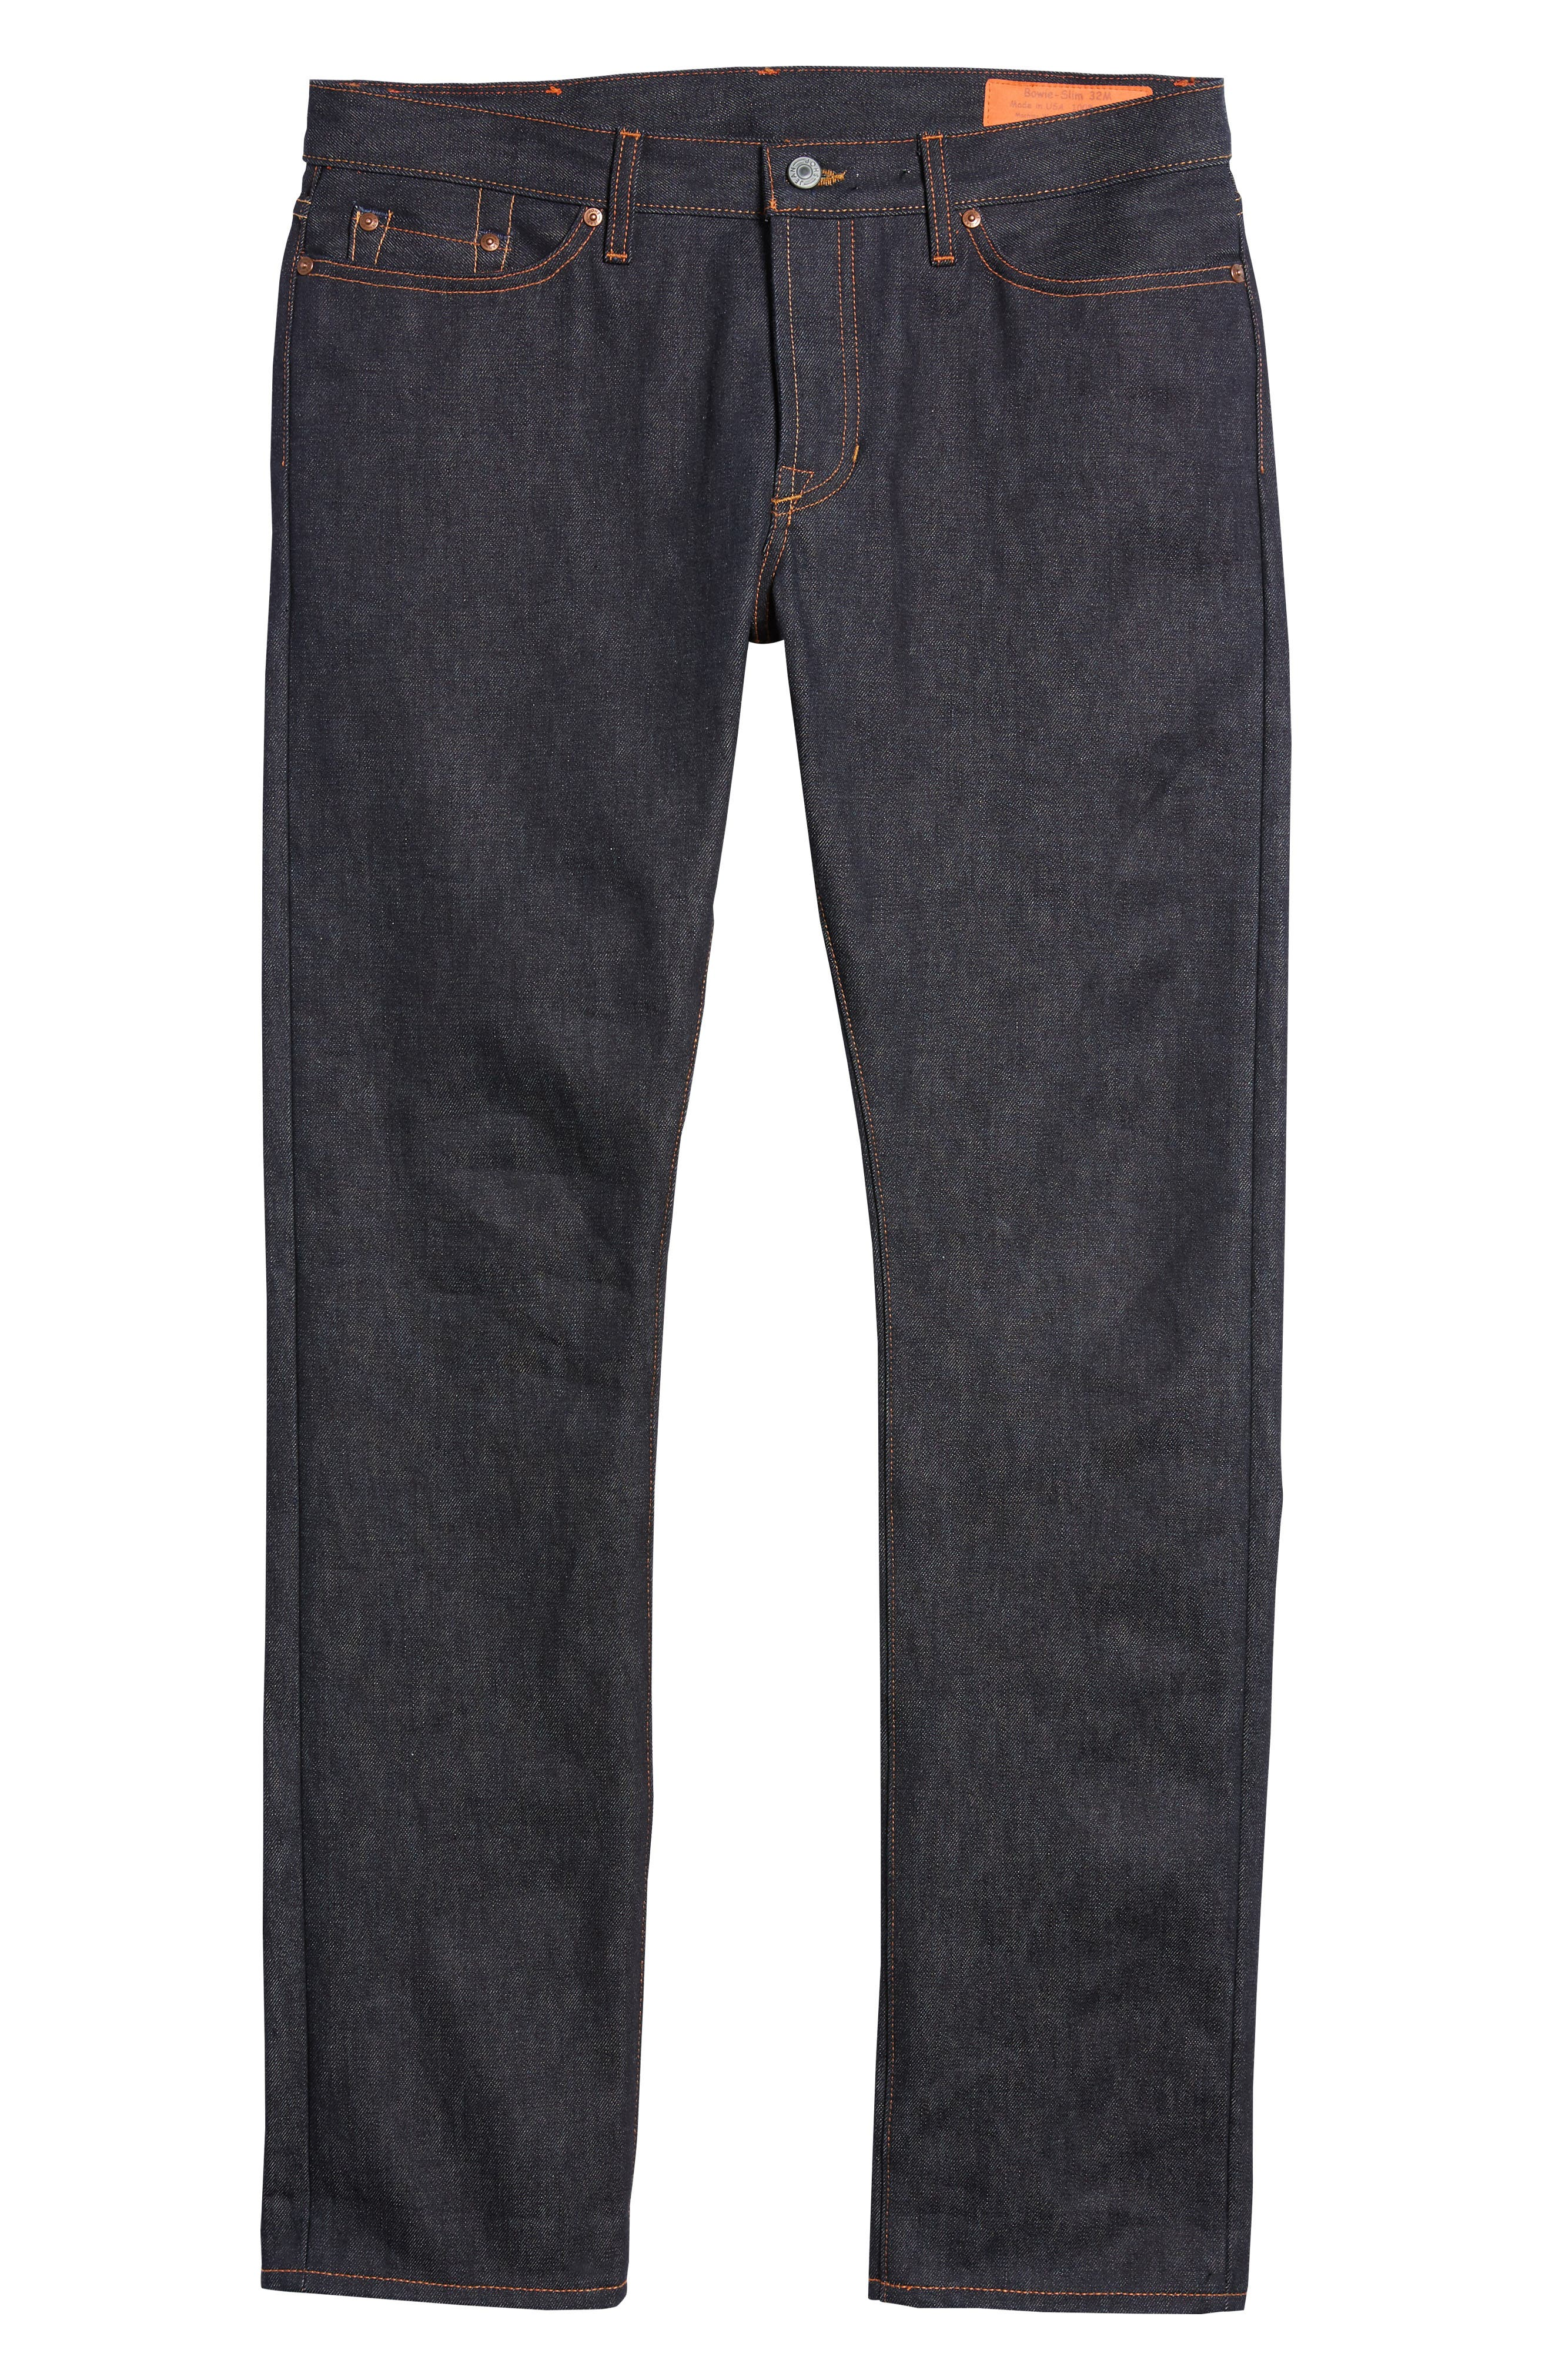 Bowie Slim Straight Leg Jeans,                             Alternate thumbnail 6, color,                             Raw